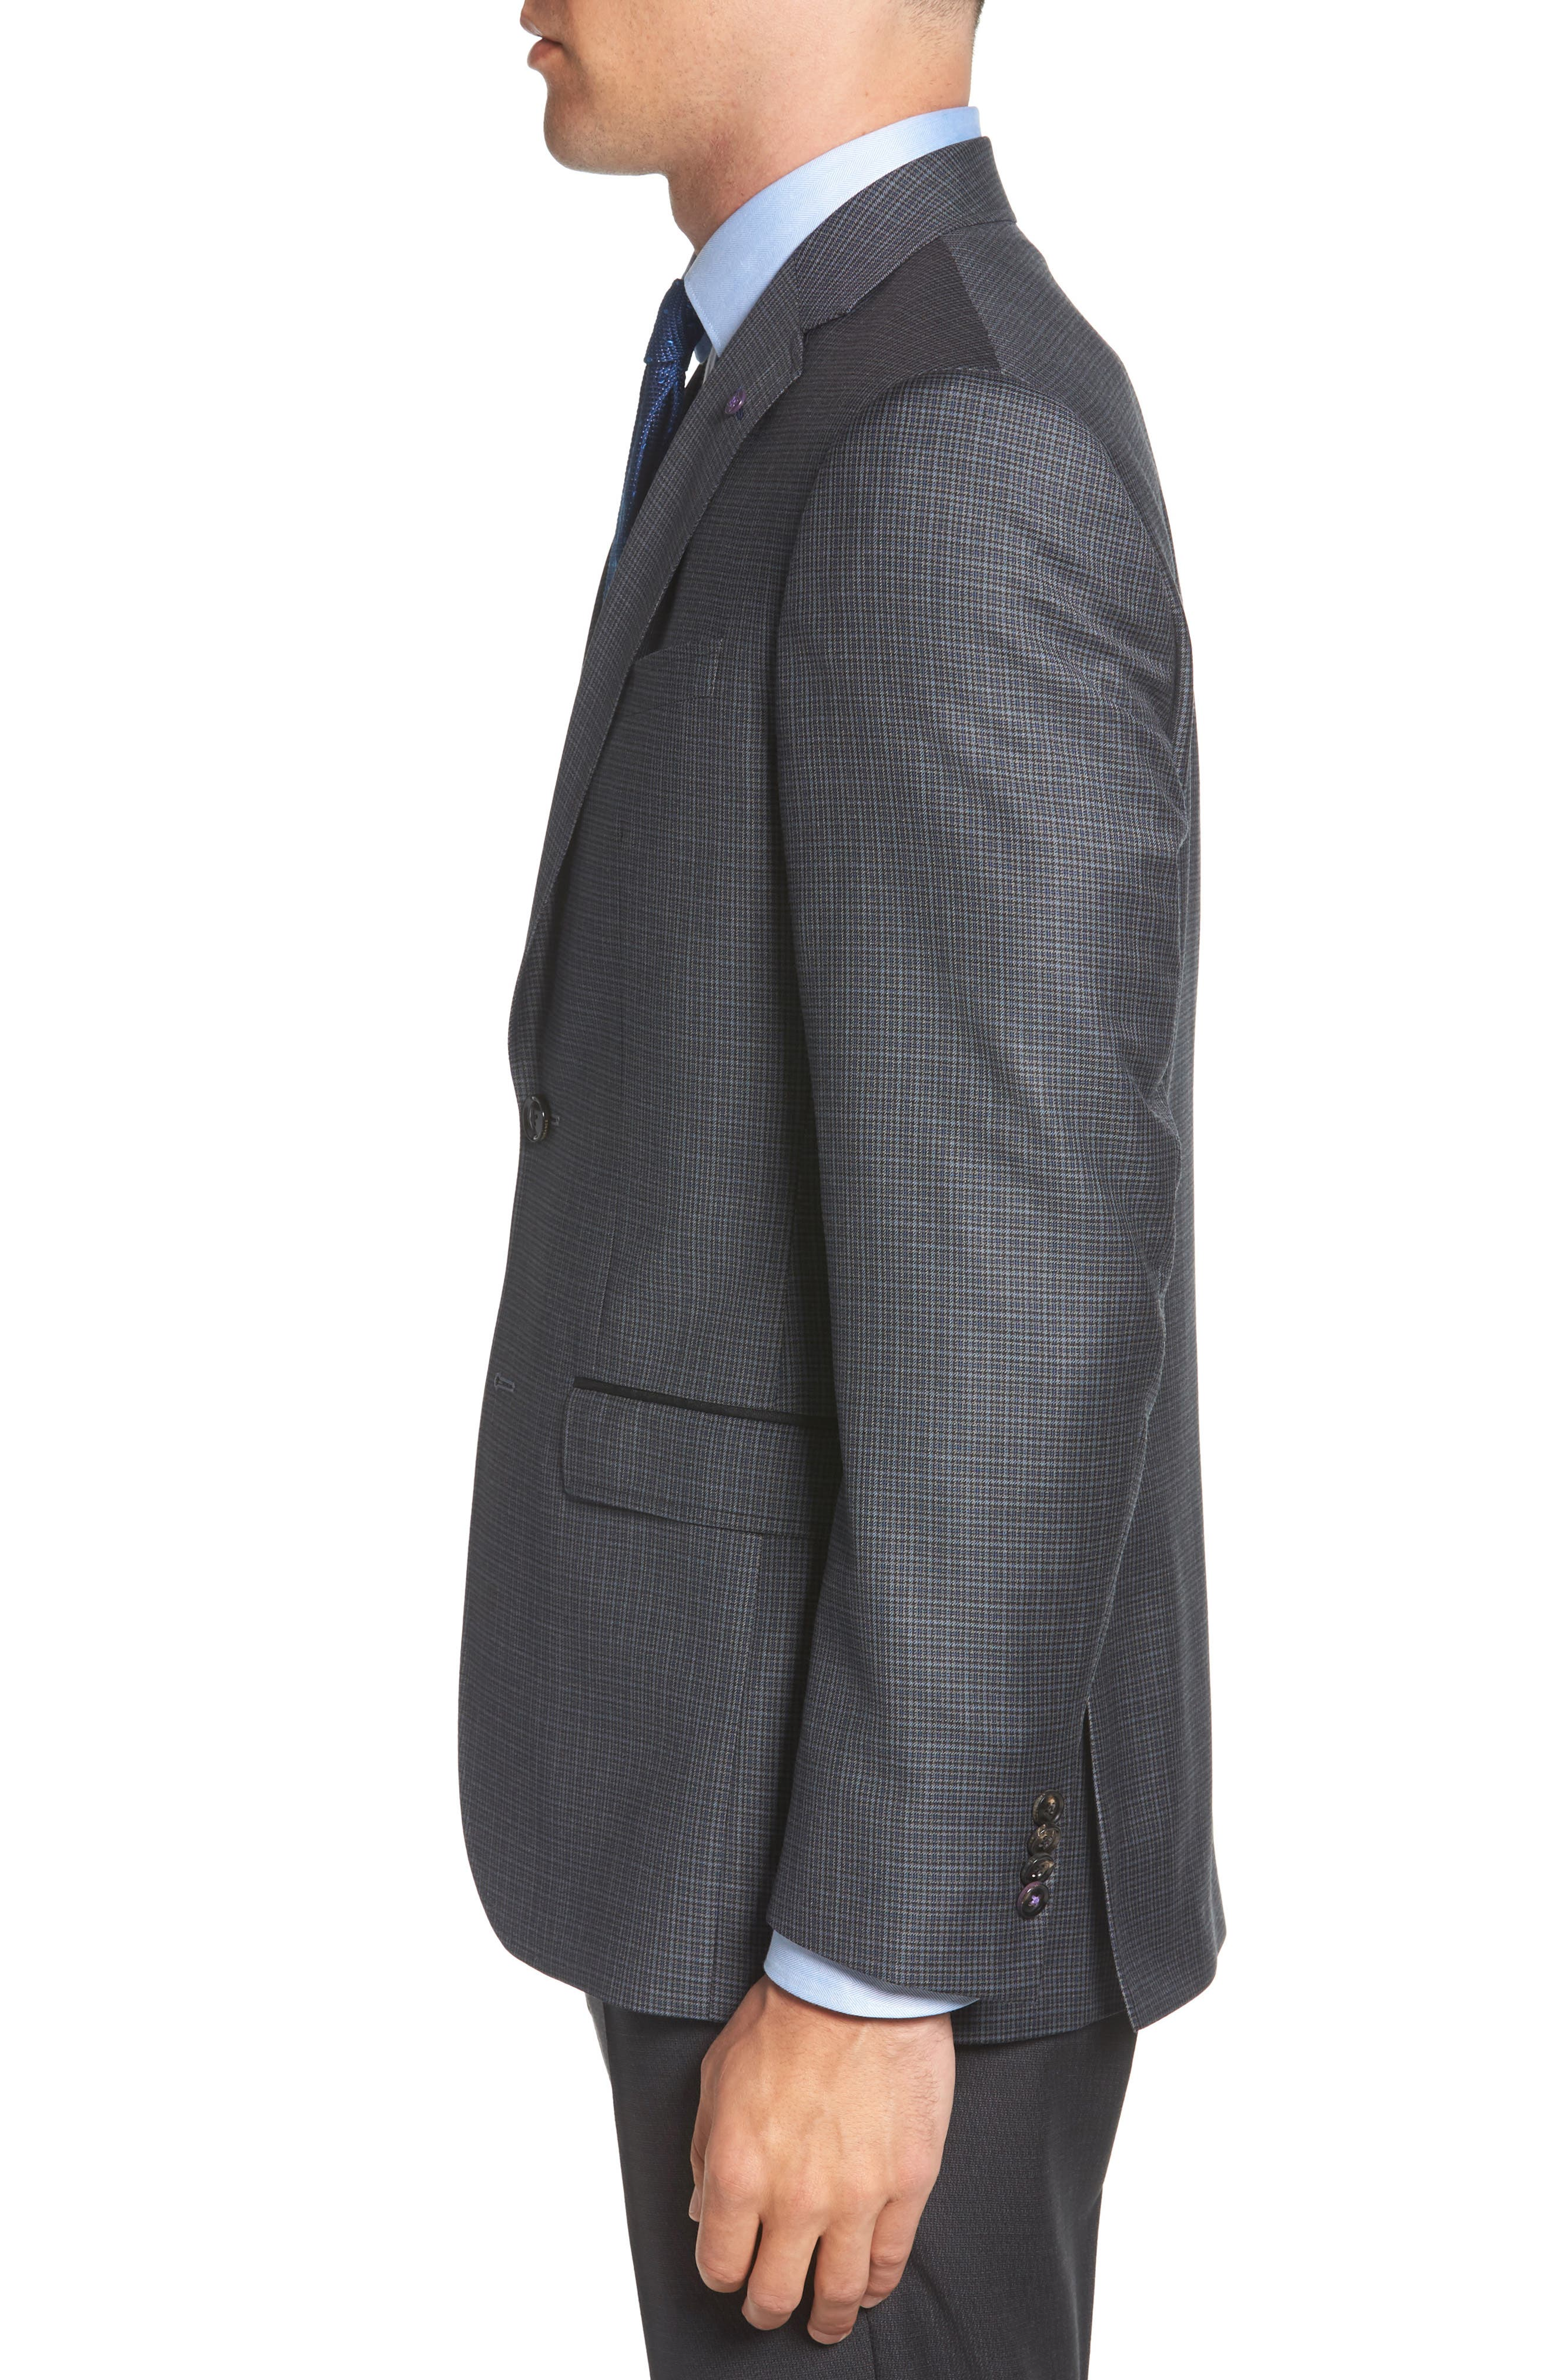 TED BAKER LONDON,                             Jed Trim Fit Microcheck Wool Sport Coat,                             Alternate thumbnail 3, color,                             020